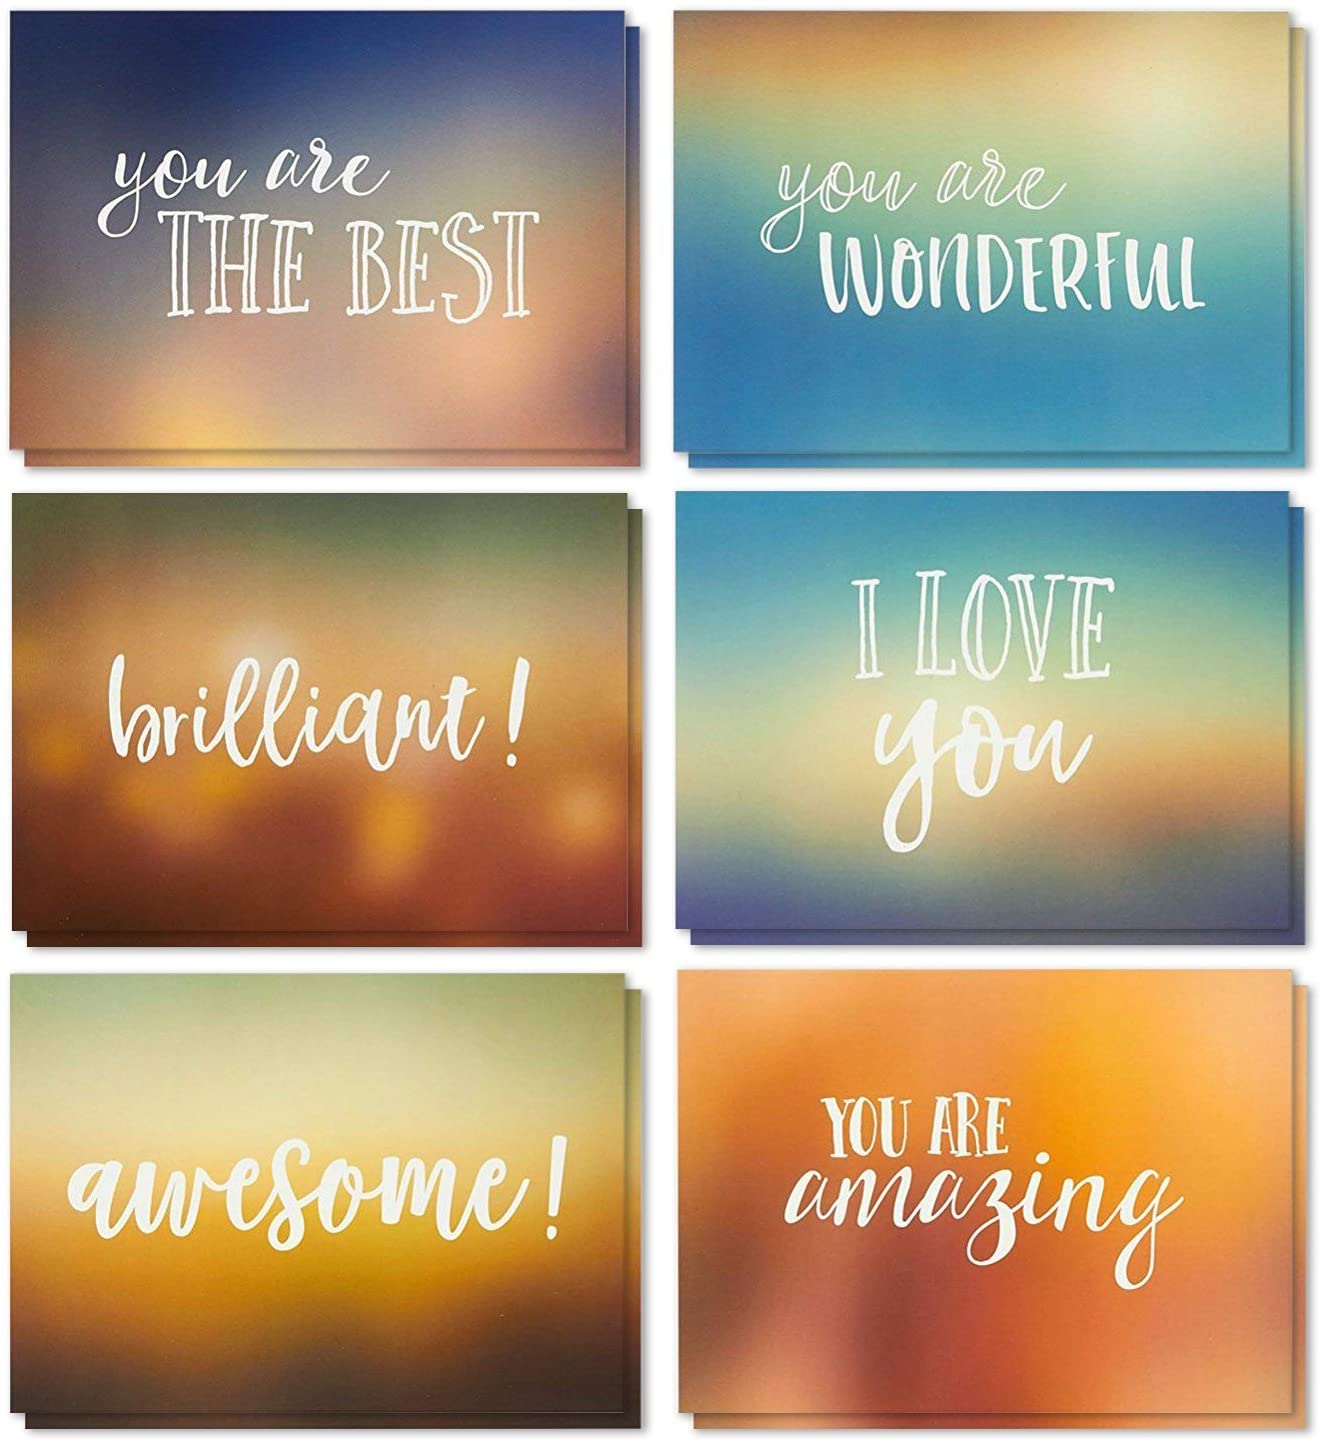 36 Pack Motivational Encouragement Greeting Cards, 6 Handwritten Modern Artistic Style Colorful Designs, Bulk Box Set Variety Assortment, Envelopes Included 5 x 7 Inches